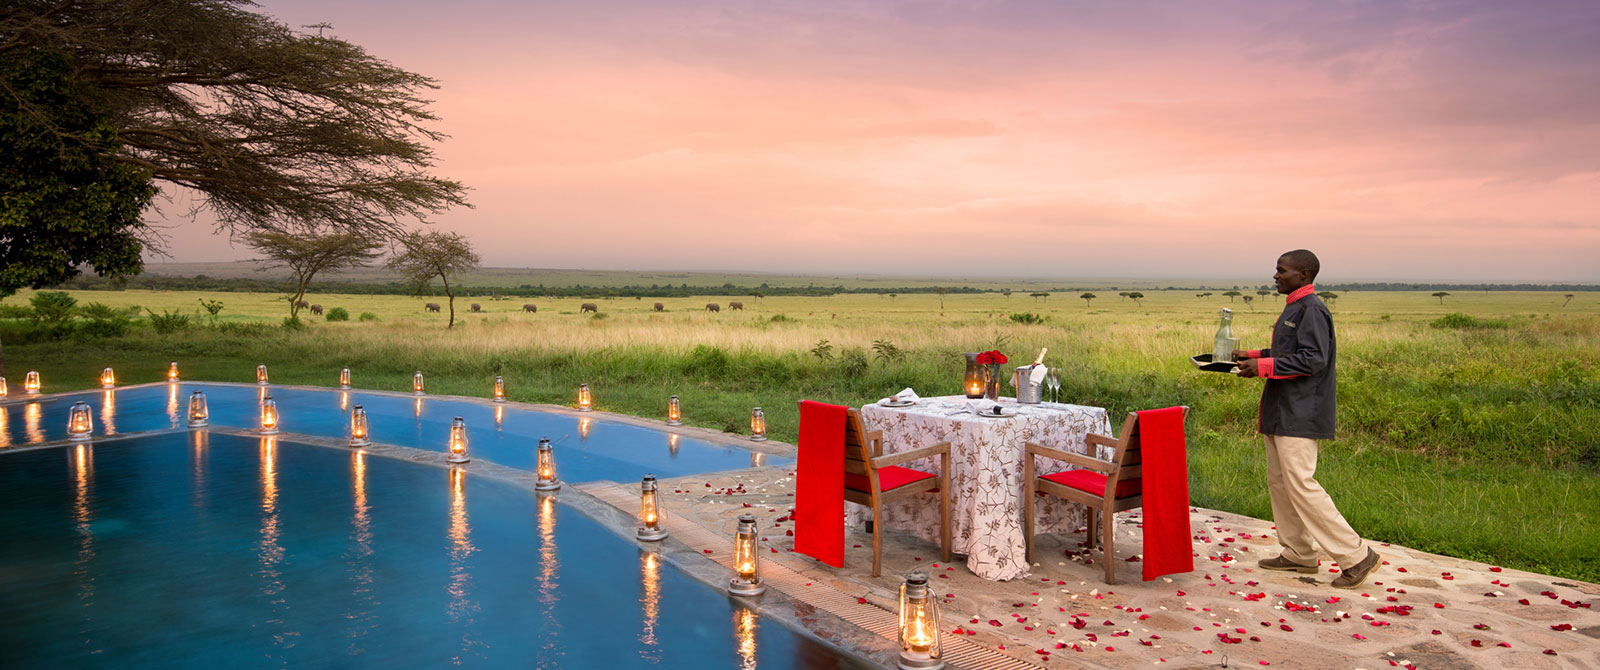 Romantic Dinner by the Pool at &Beyond Kichwa Tembo Tented Camp